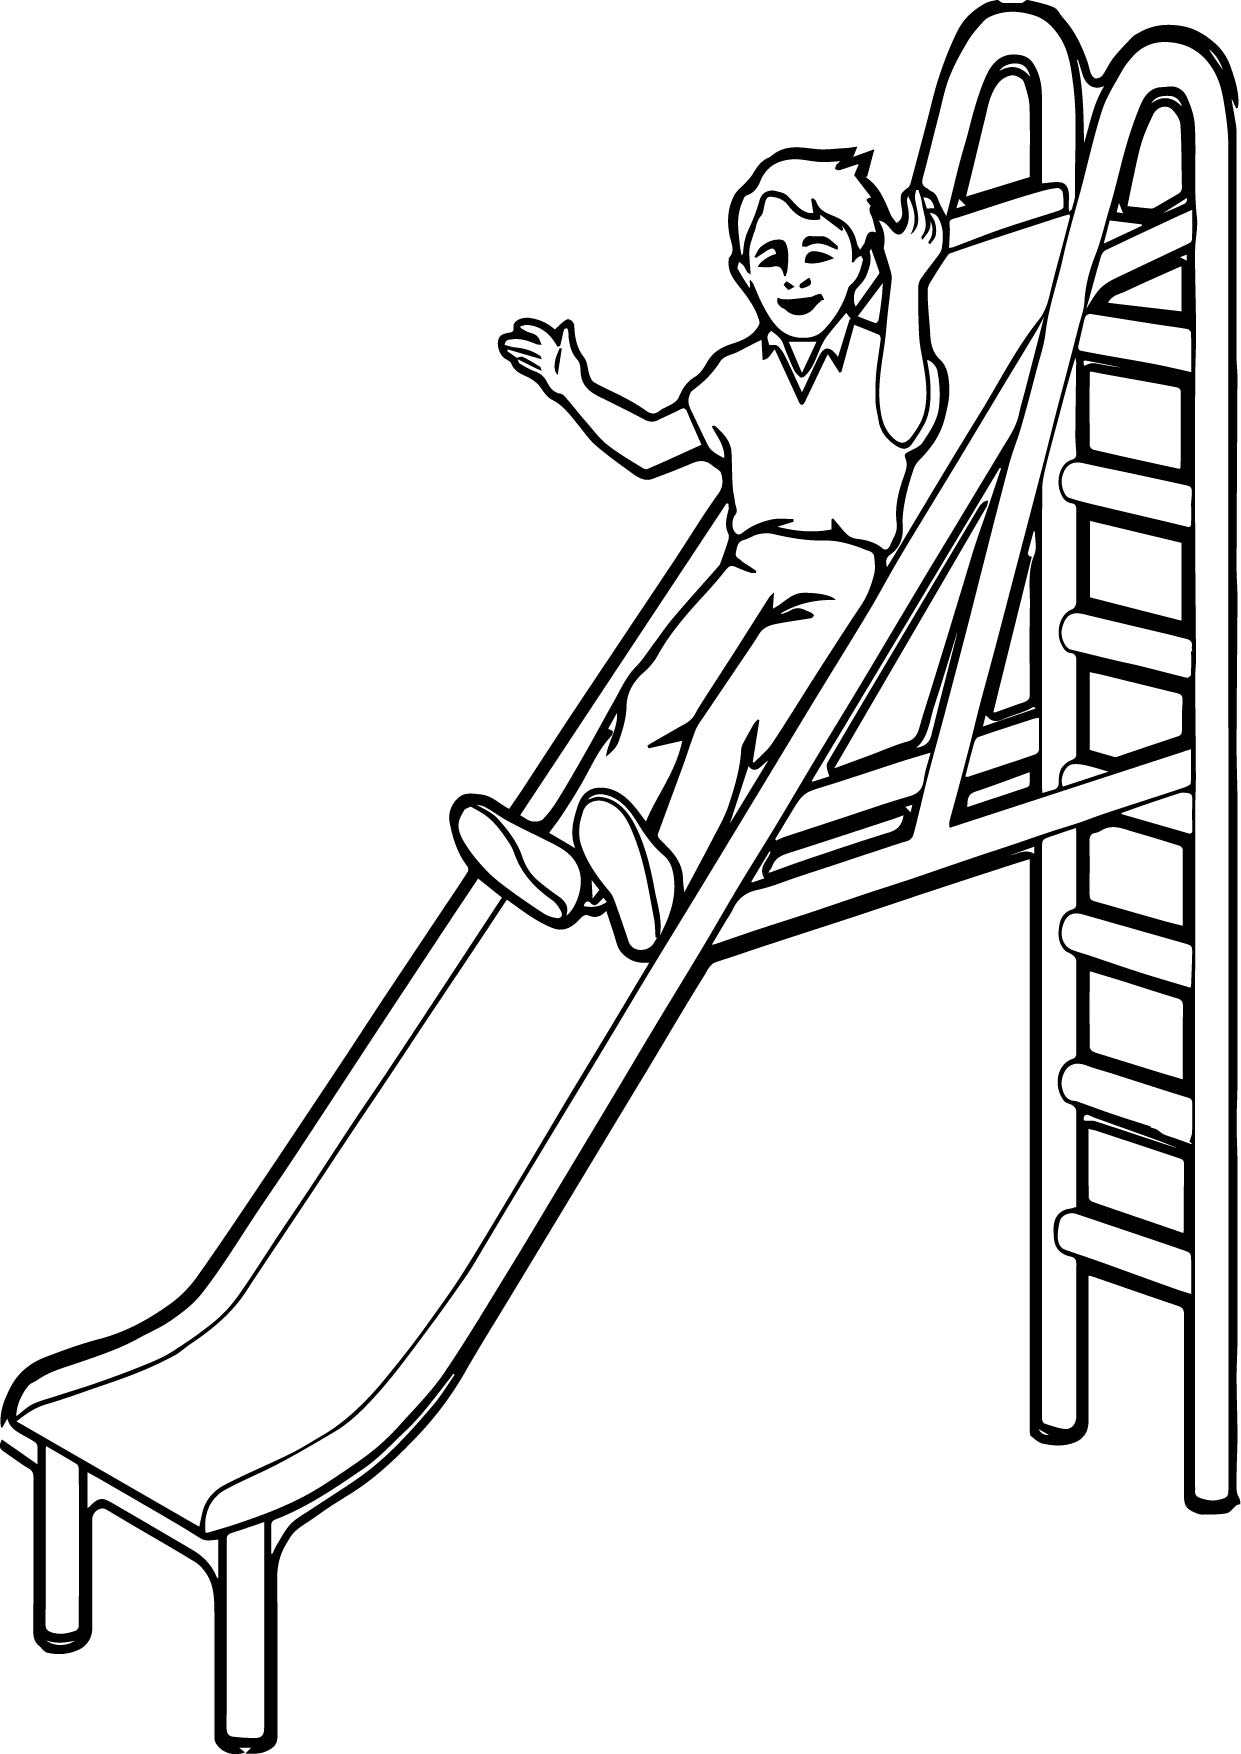 Playground Slide Kid Coloring Page